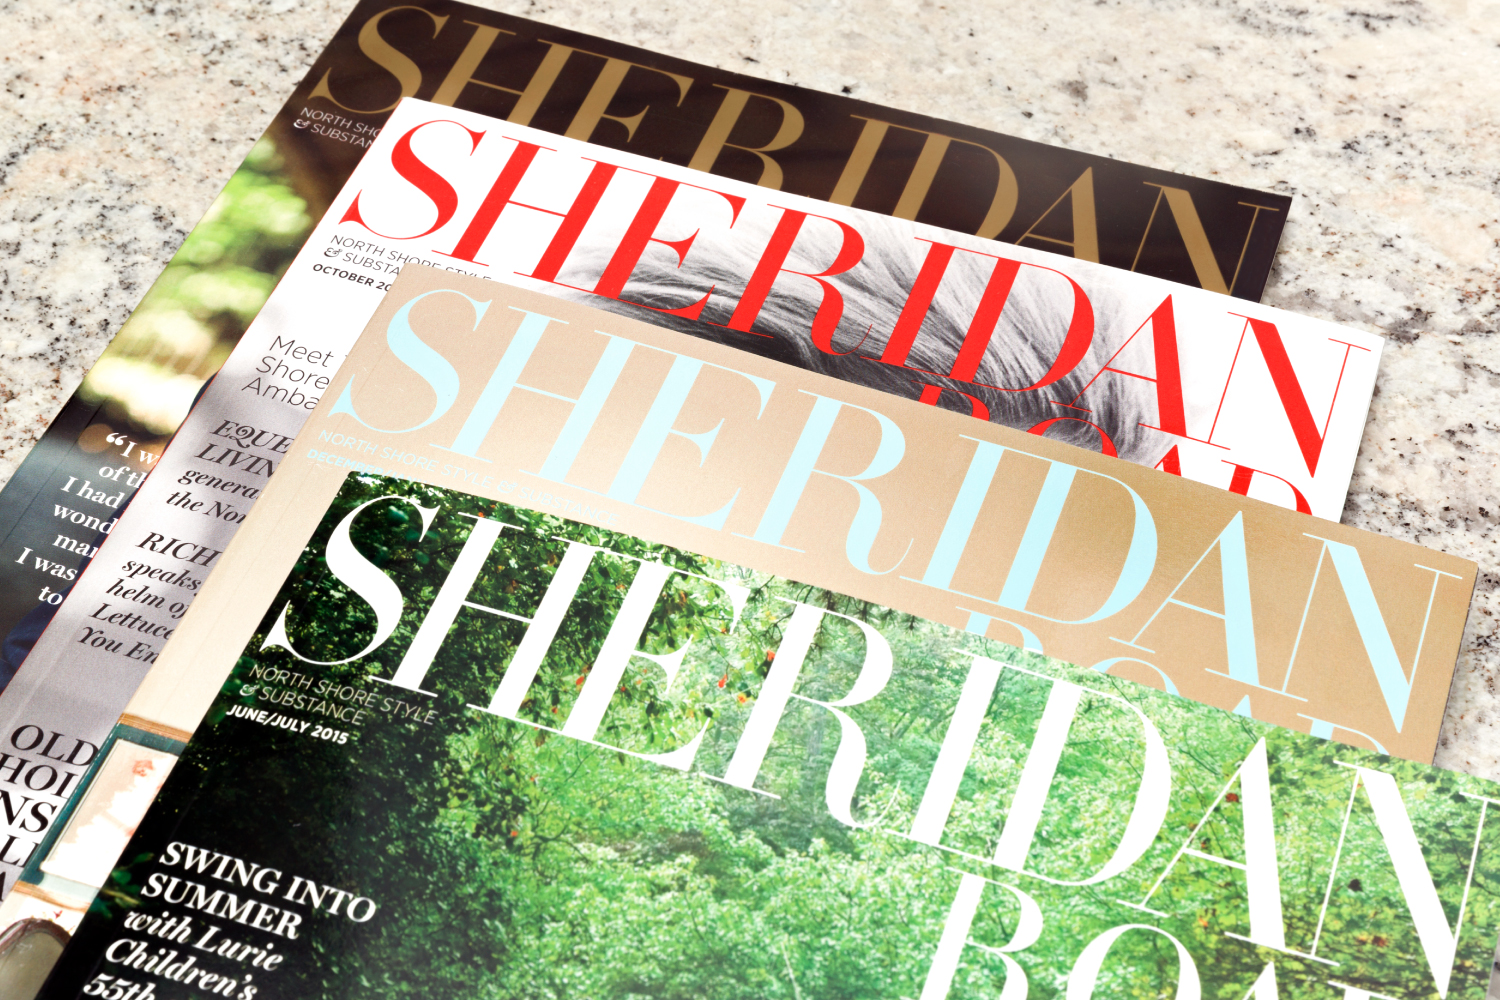 Sheridan Road magazine art direction and design.